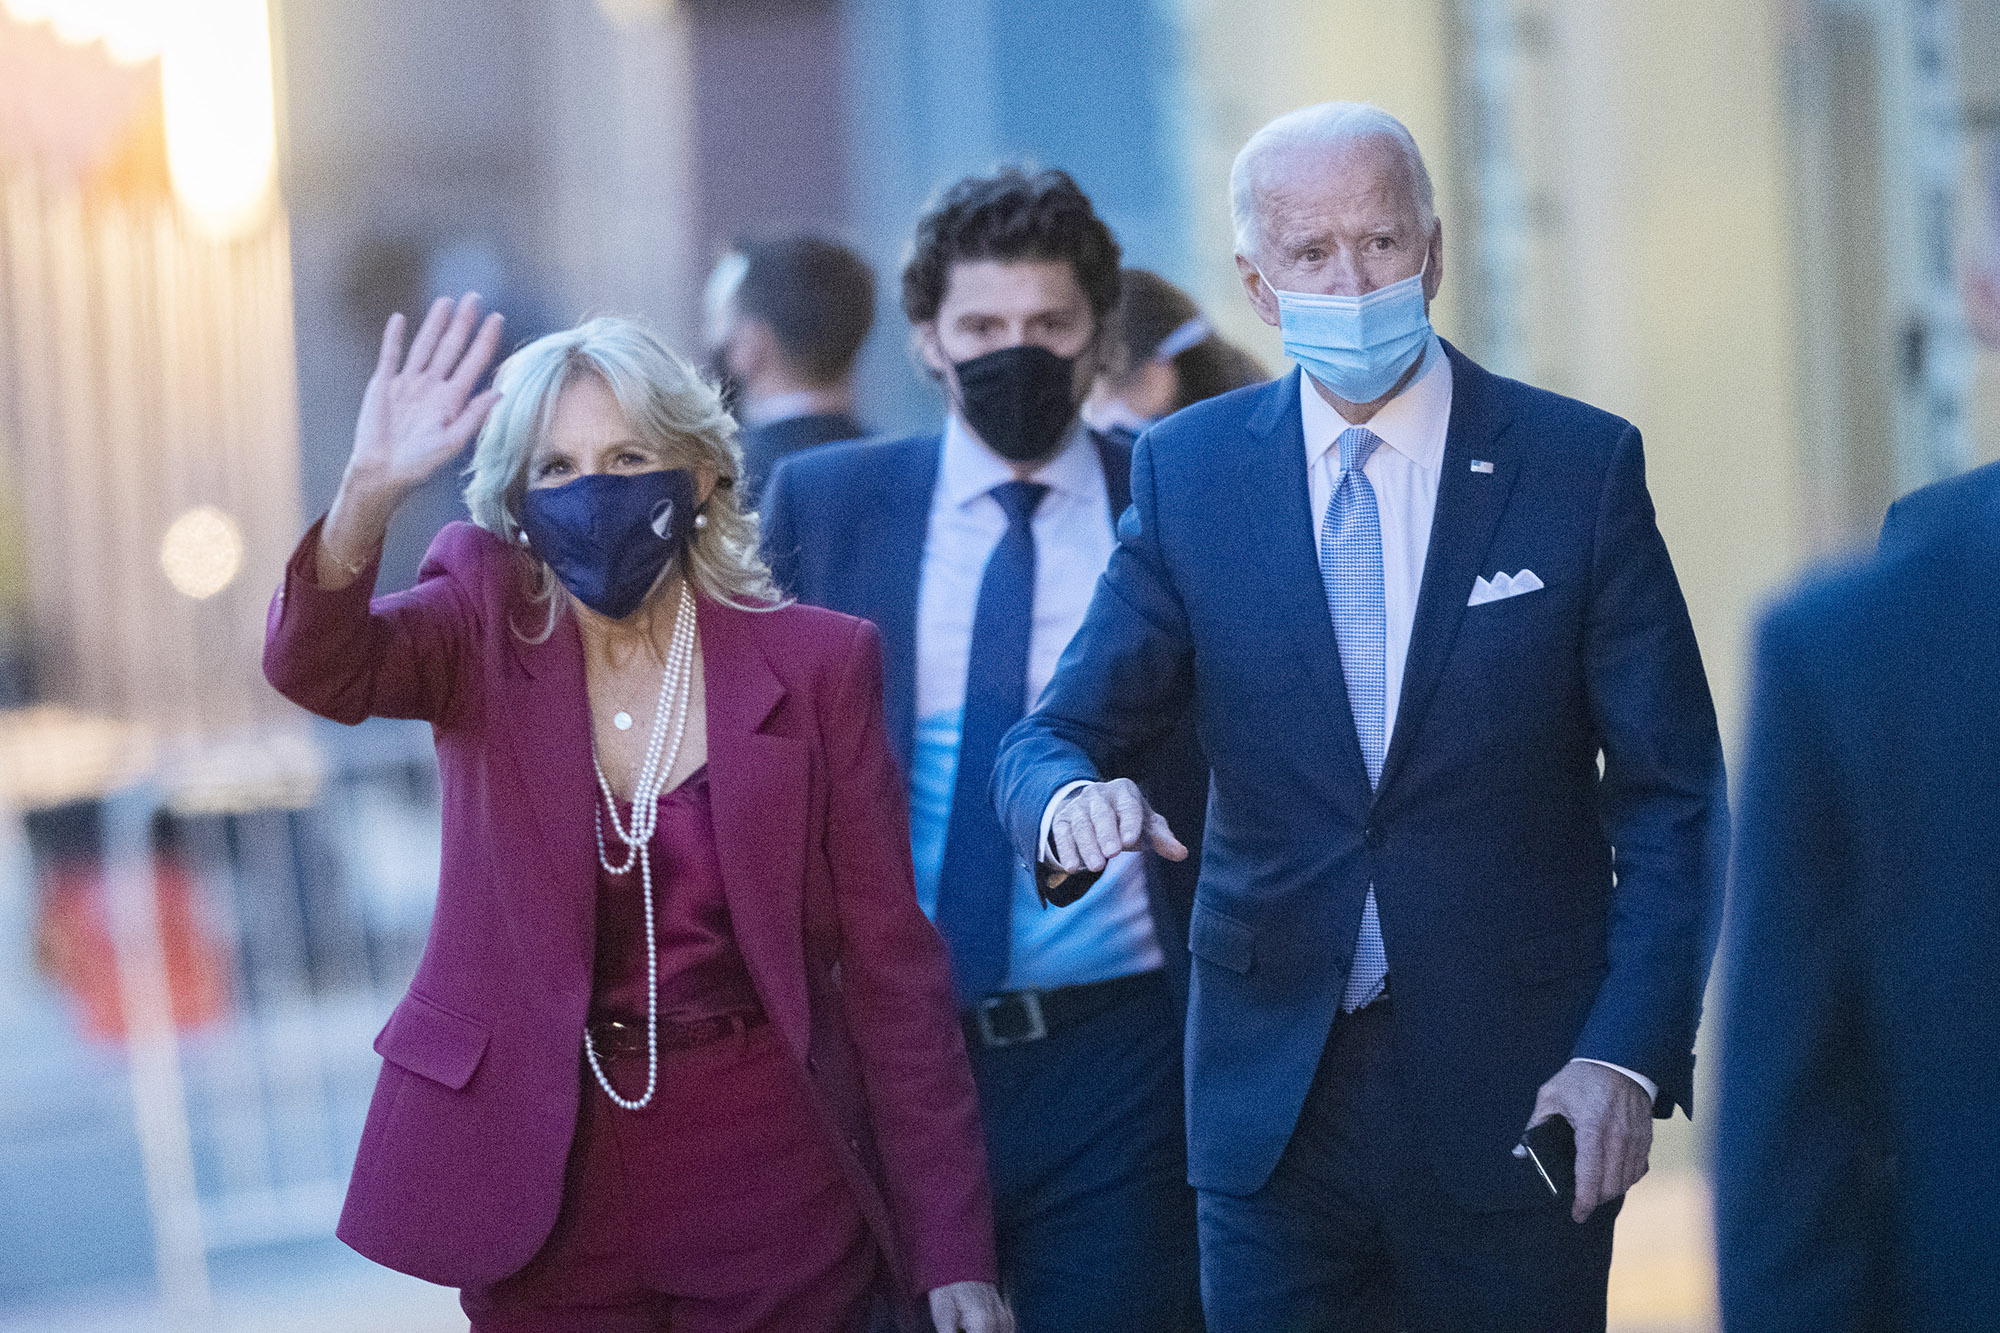 President-elect Joe Biden, and his wife, Dr. Jill Biden, depart the Queen Theater after introducing key foreign policy and national security nominees and appointments on November 24, in Wilmington, Delaware.